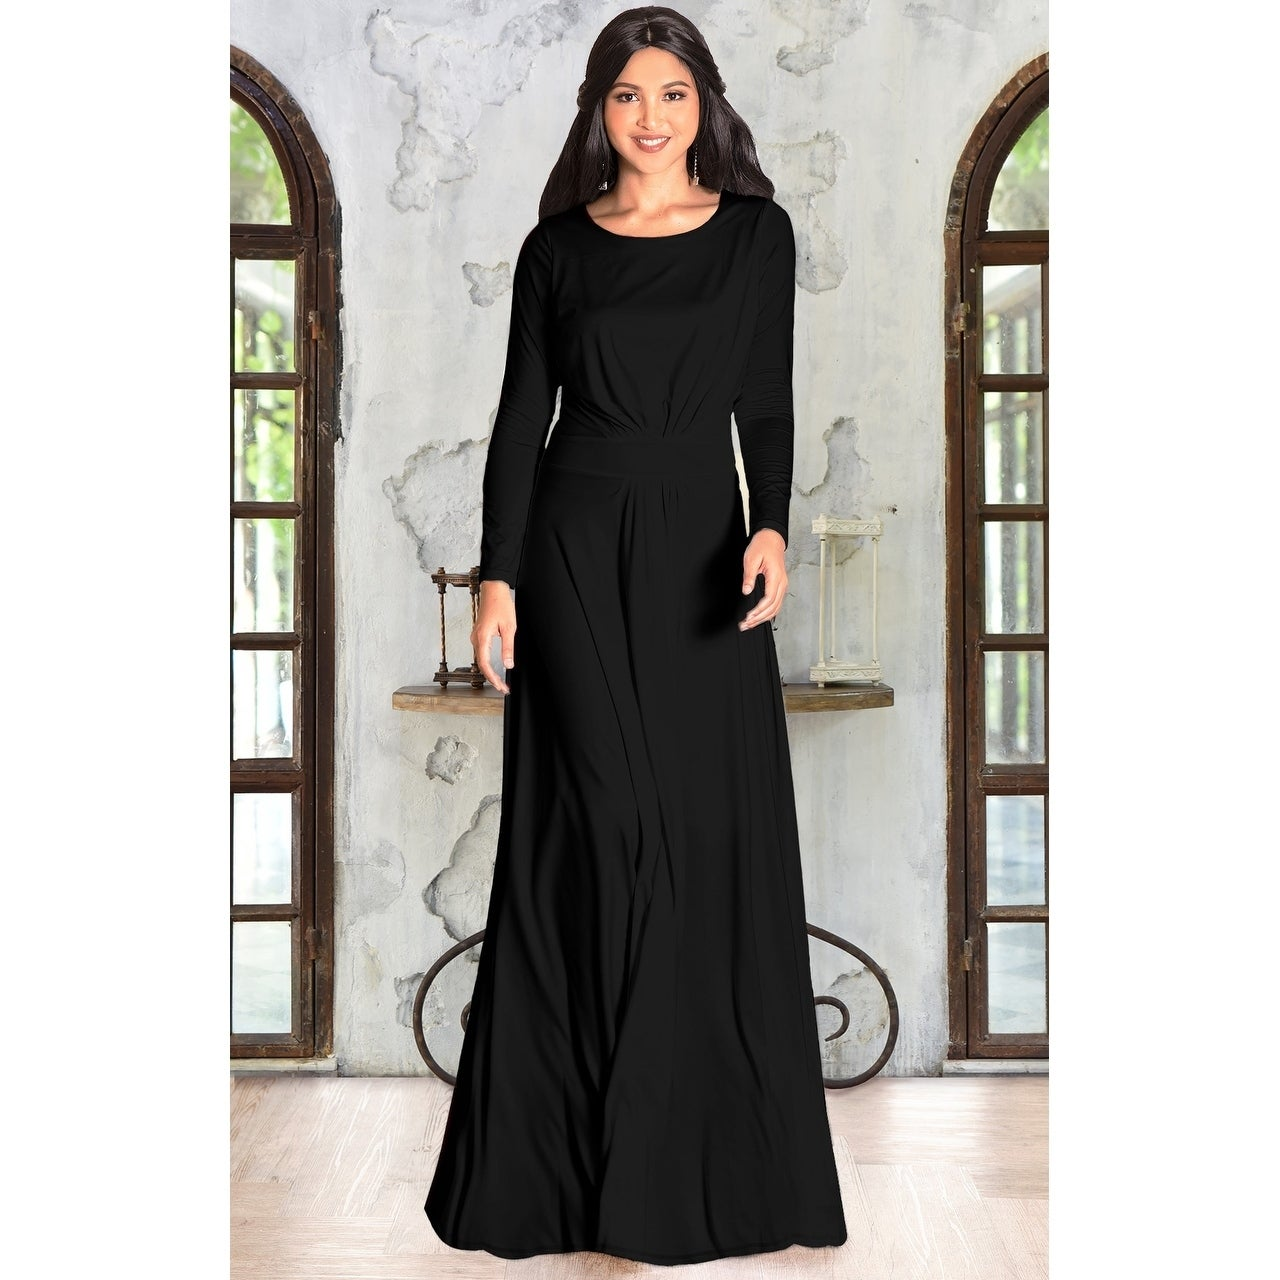 b53a4f38ae5e Size M Black Dresses | Find Great Women's Clothing Deals Shopping at  Overstock.com